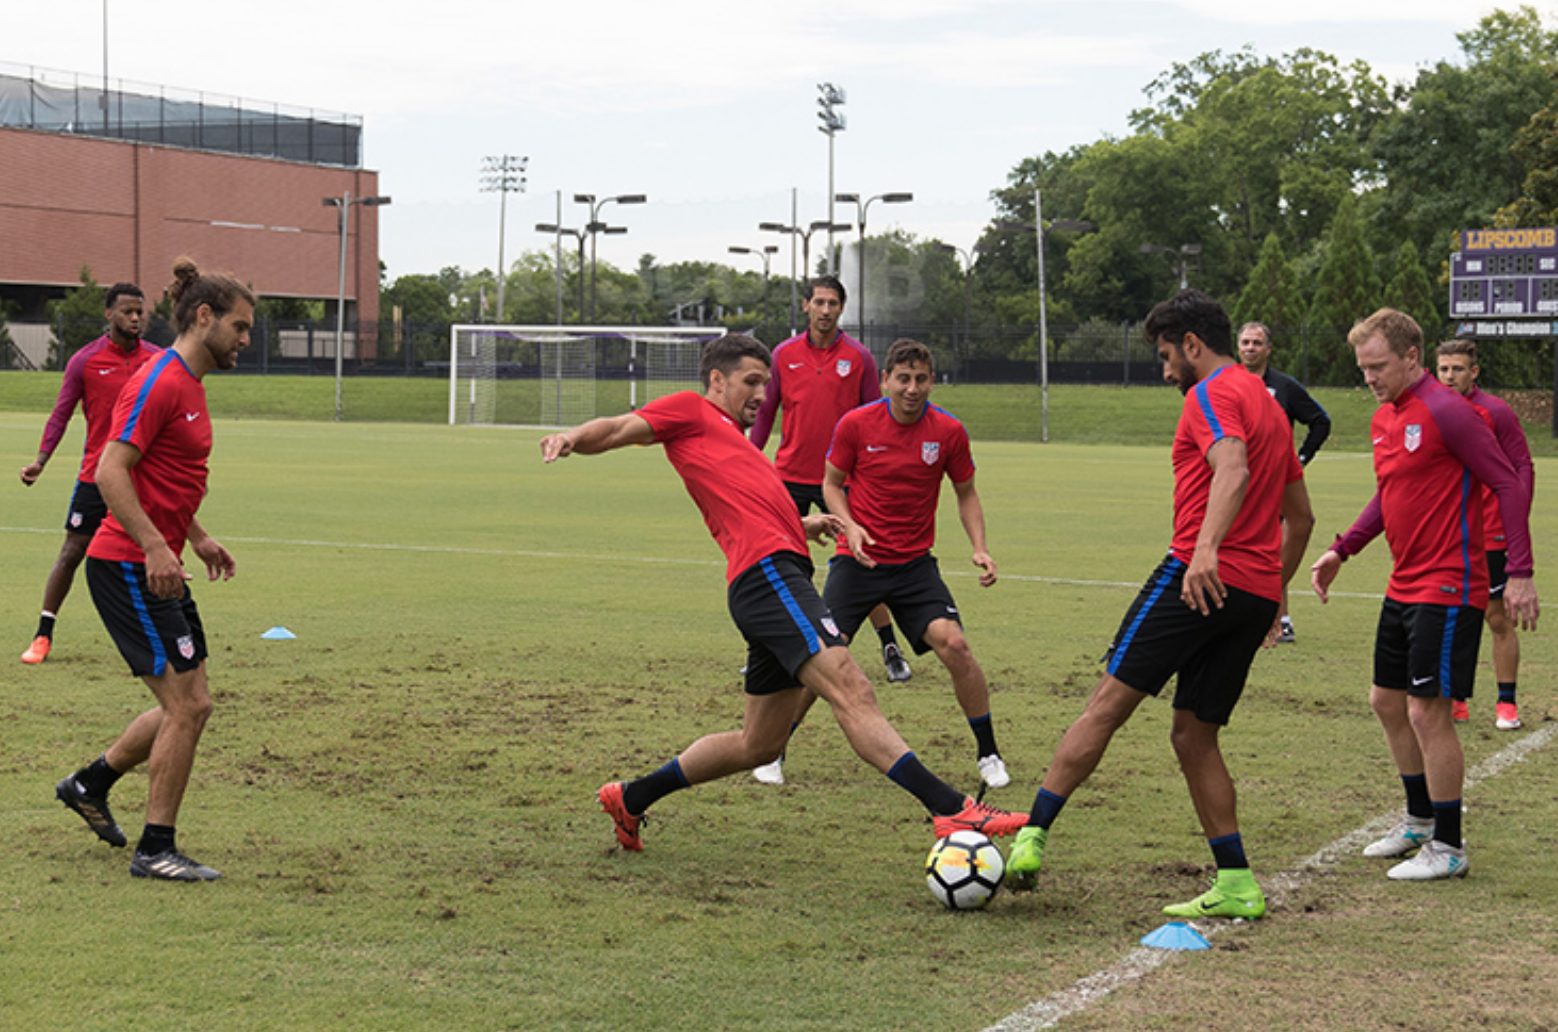 What to expect from United States Men's National Team in Gold Cup